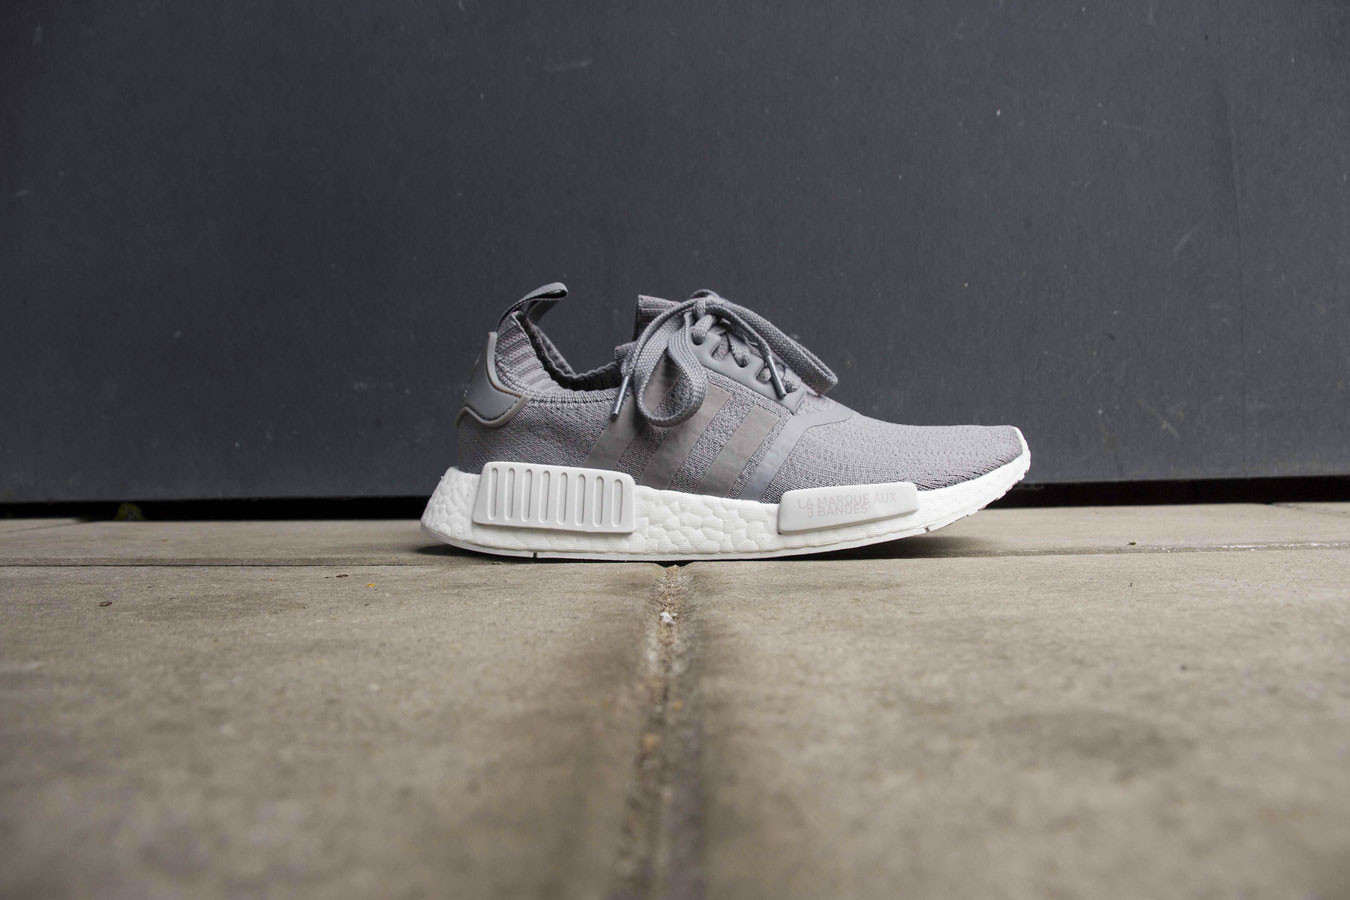 new arrivals 3158e 1b936 adidas NMD R1 Primeknit Grey Three